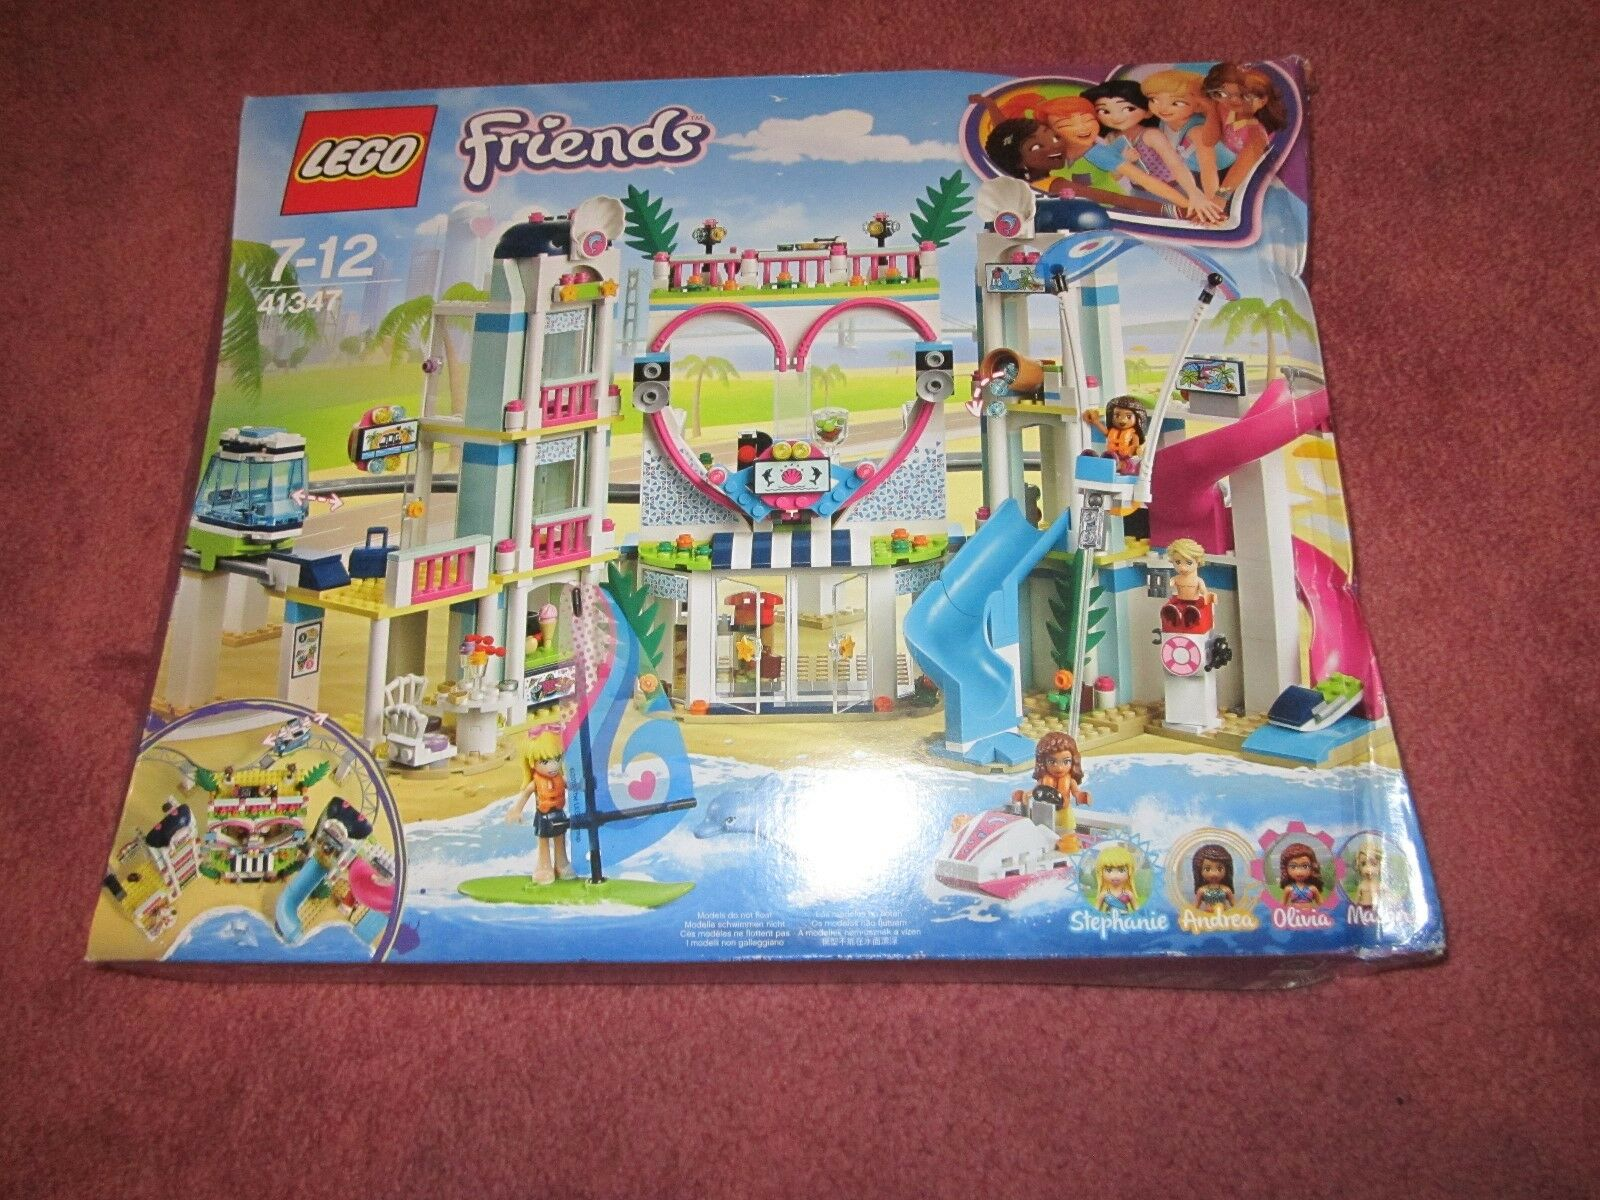 Lego Friends Heartlake City Resort (41347) DAMAGED BOX BOX BOX - SEE PHOTOS - NEW 158ed6